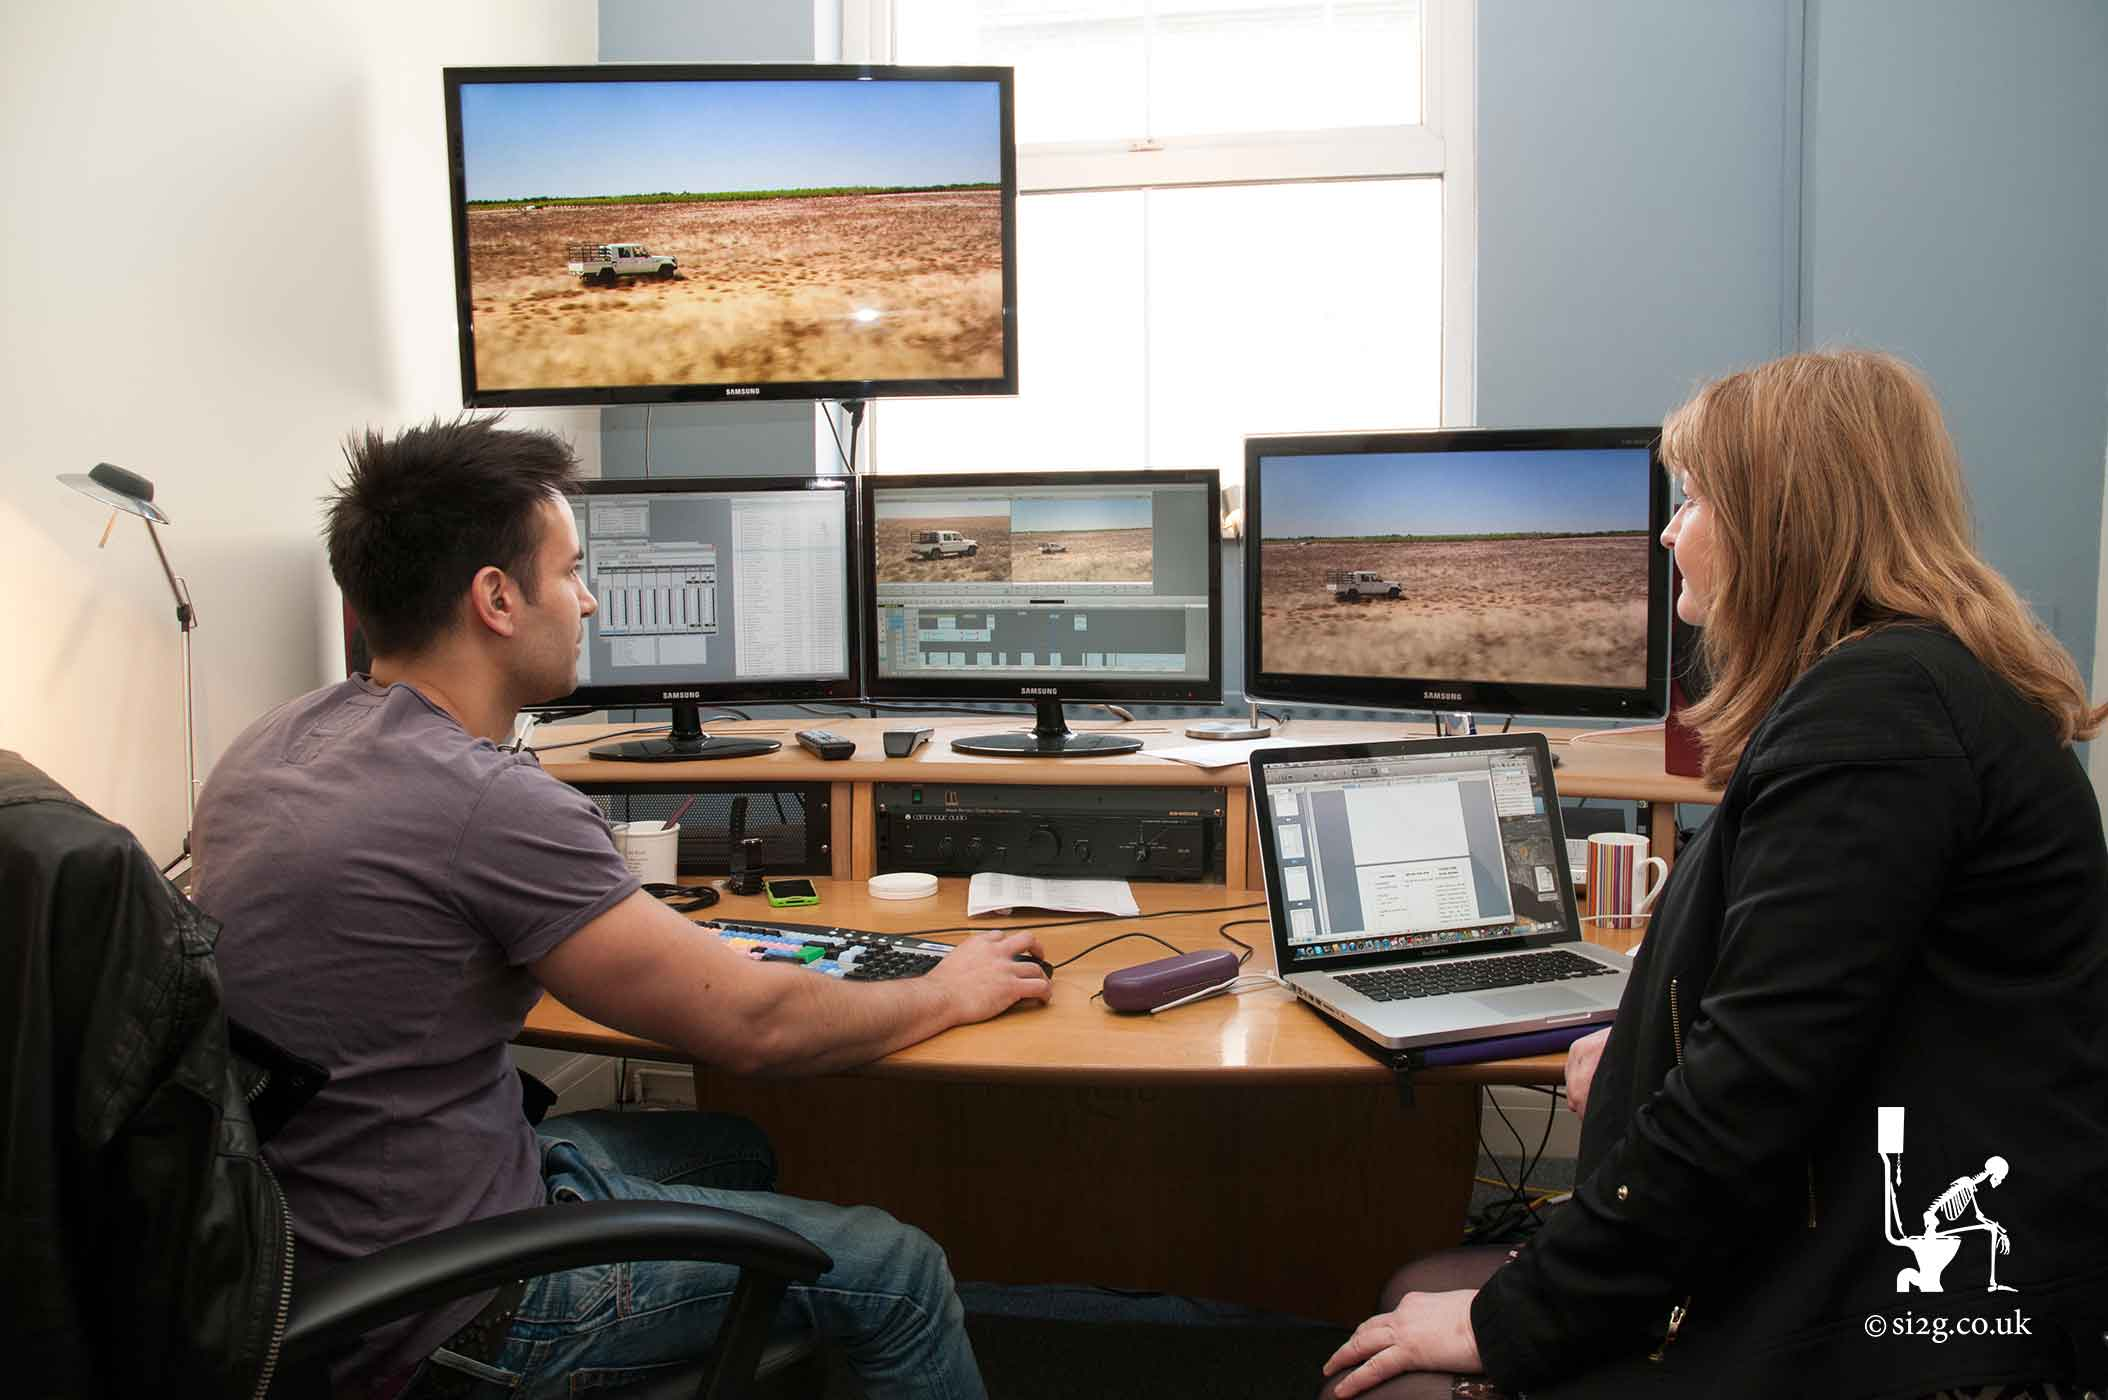 Offline Edit Suite - Offline editing in progress using Avid Media Composer to edit the footage shot in South Africa.